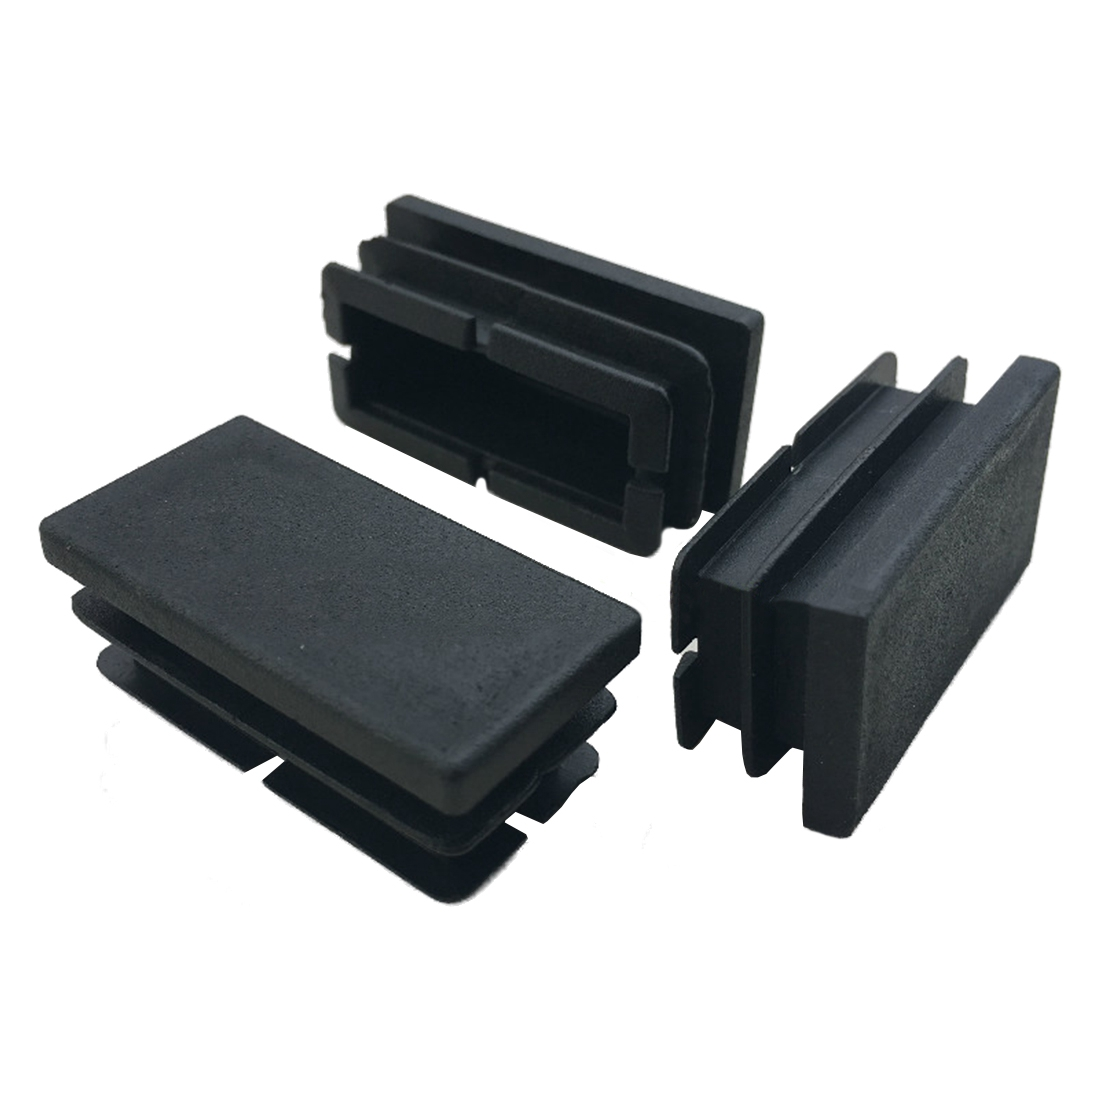 Fashion-8 Pcs Black Plastic Rectangular Blanking End Caps Inserts 20mm x 40mmFashion-8 Pcs Black Plastic Rectangular Blanking End Caps Inserts 20mm x 40mm